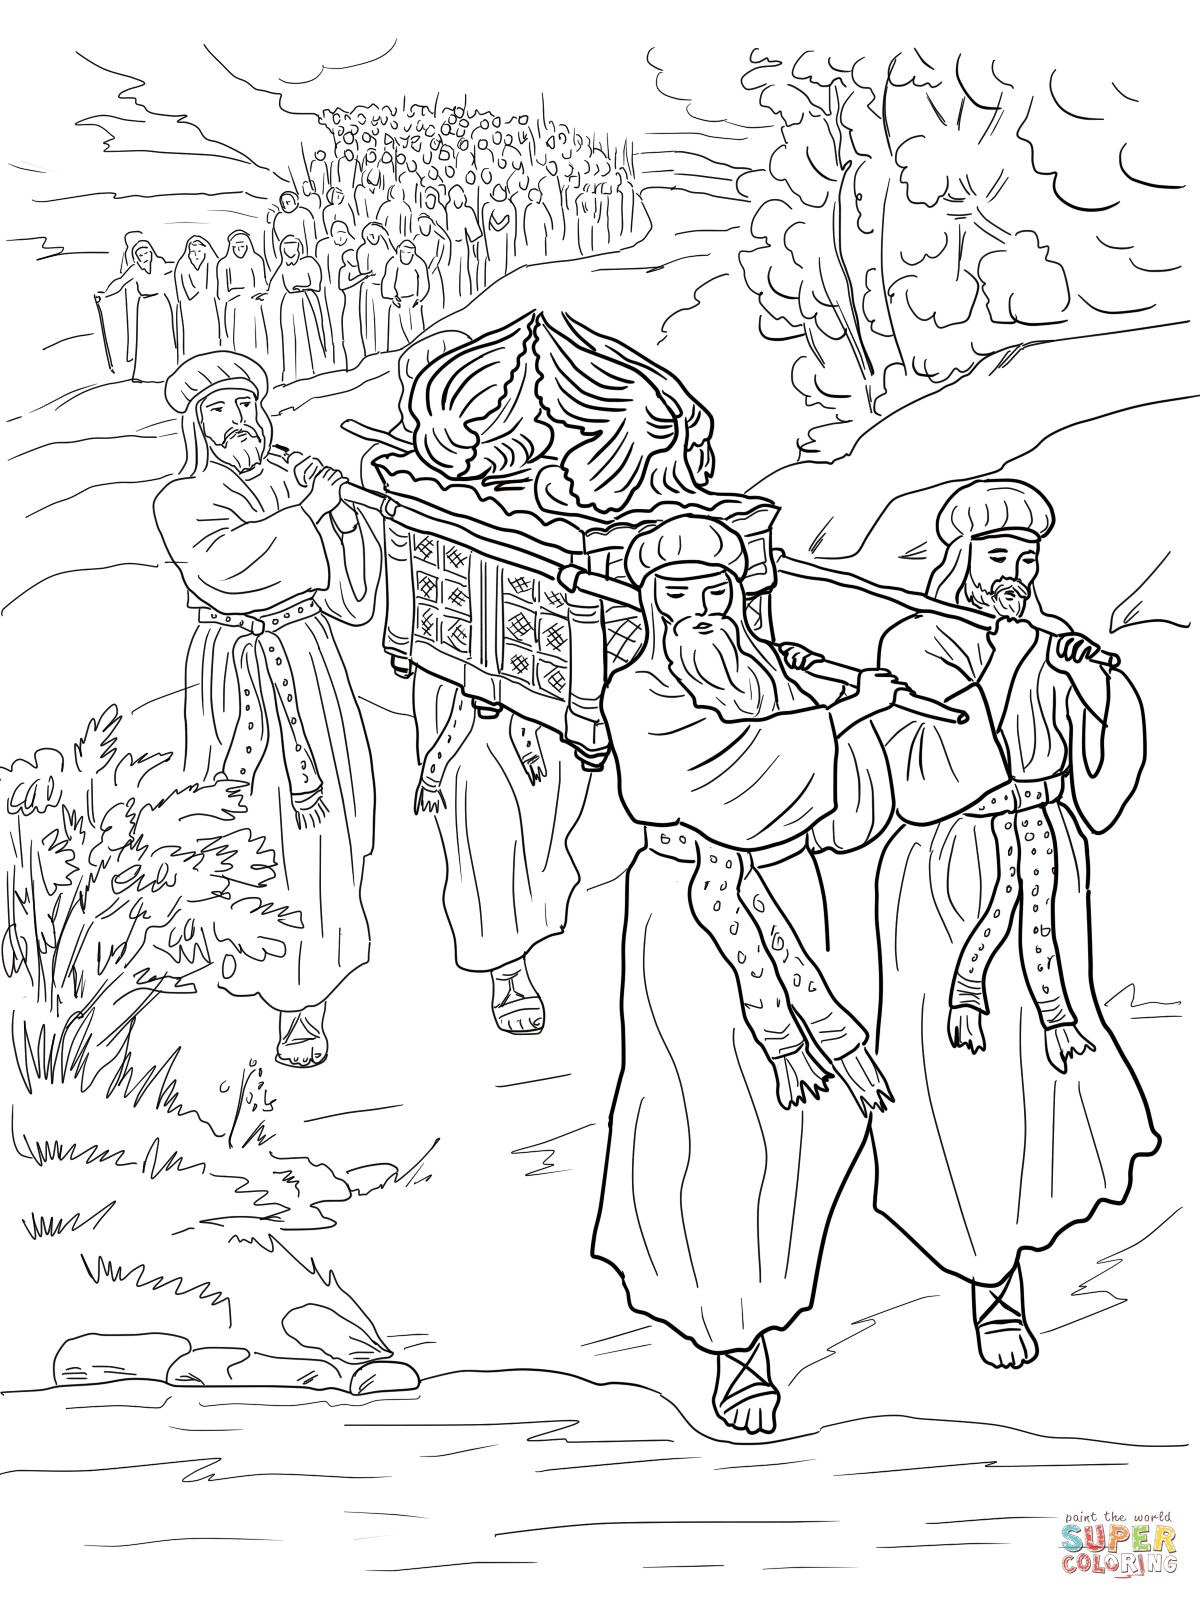 Road to emmaus coloring pages